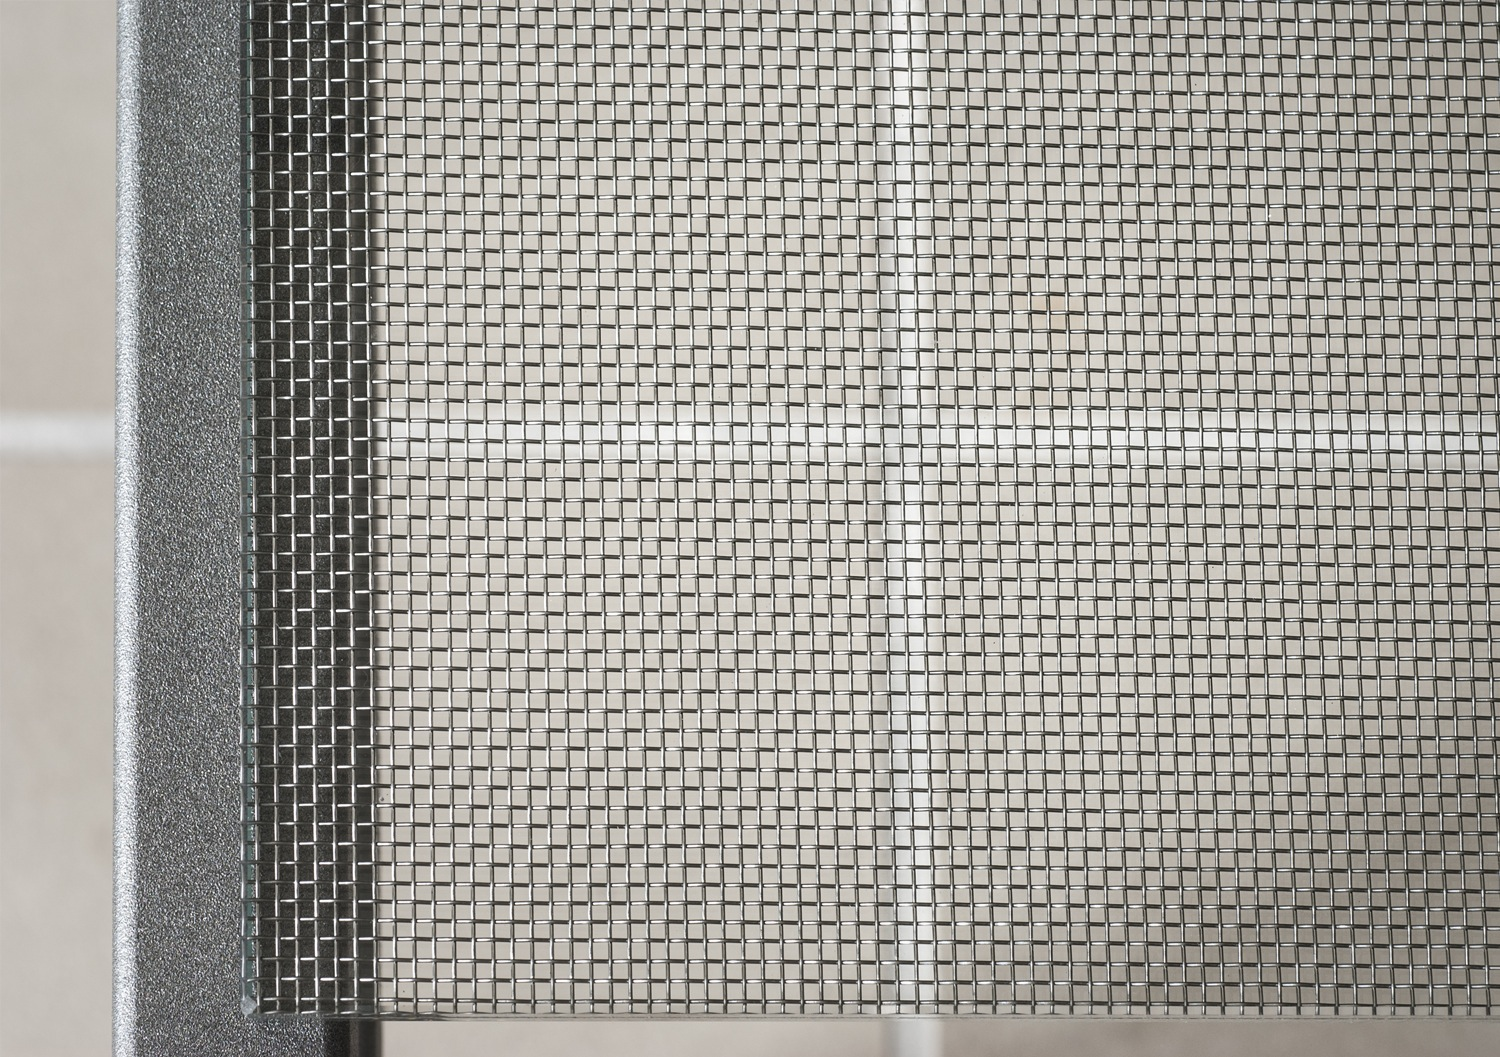 Another photo of the wire mesh glass